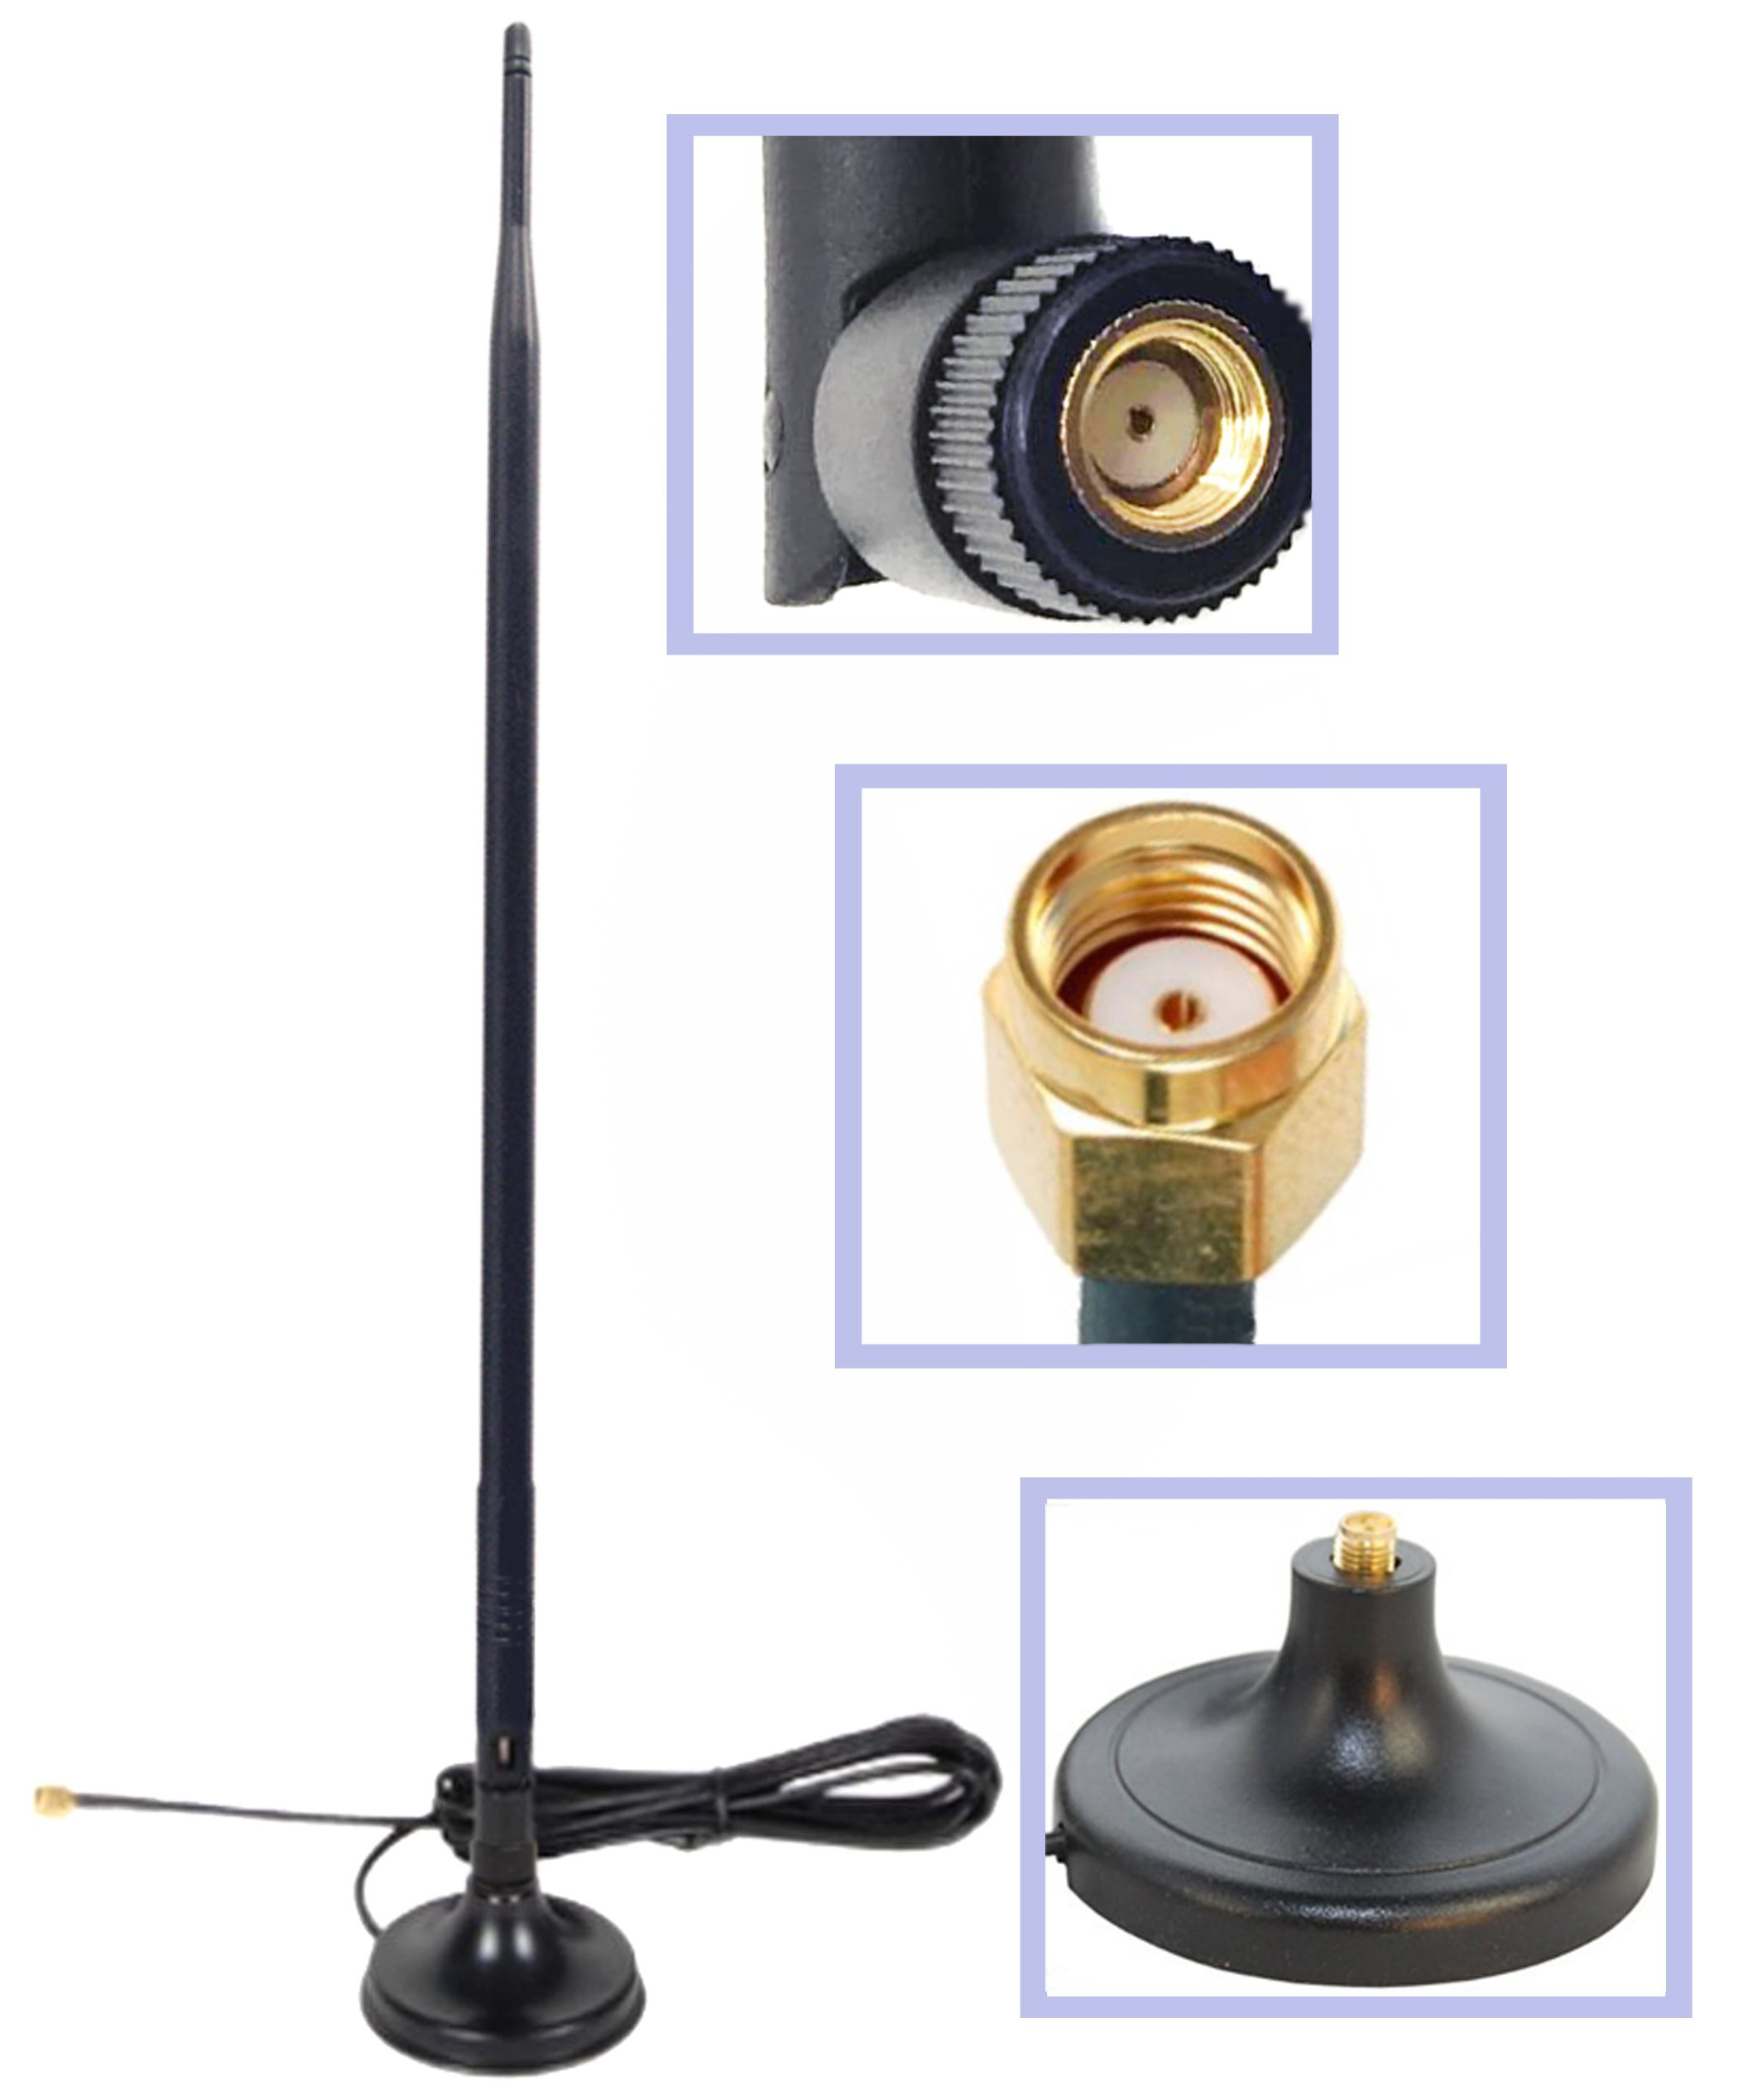 Dual Band Wi-Fi 9dbi Booster Long Range Omni Directional 2.4/5Ghz 802.11n/b/g Antenna with RP-SMA Male Connector on Magnetic Base (19,5''/50cm RG174 Coaxial Cable)